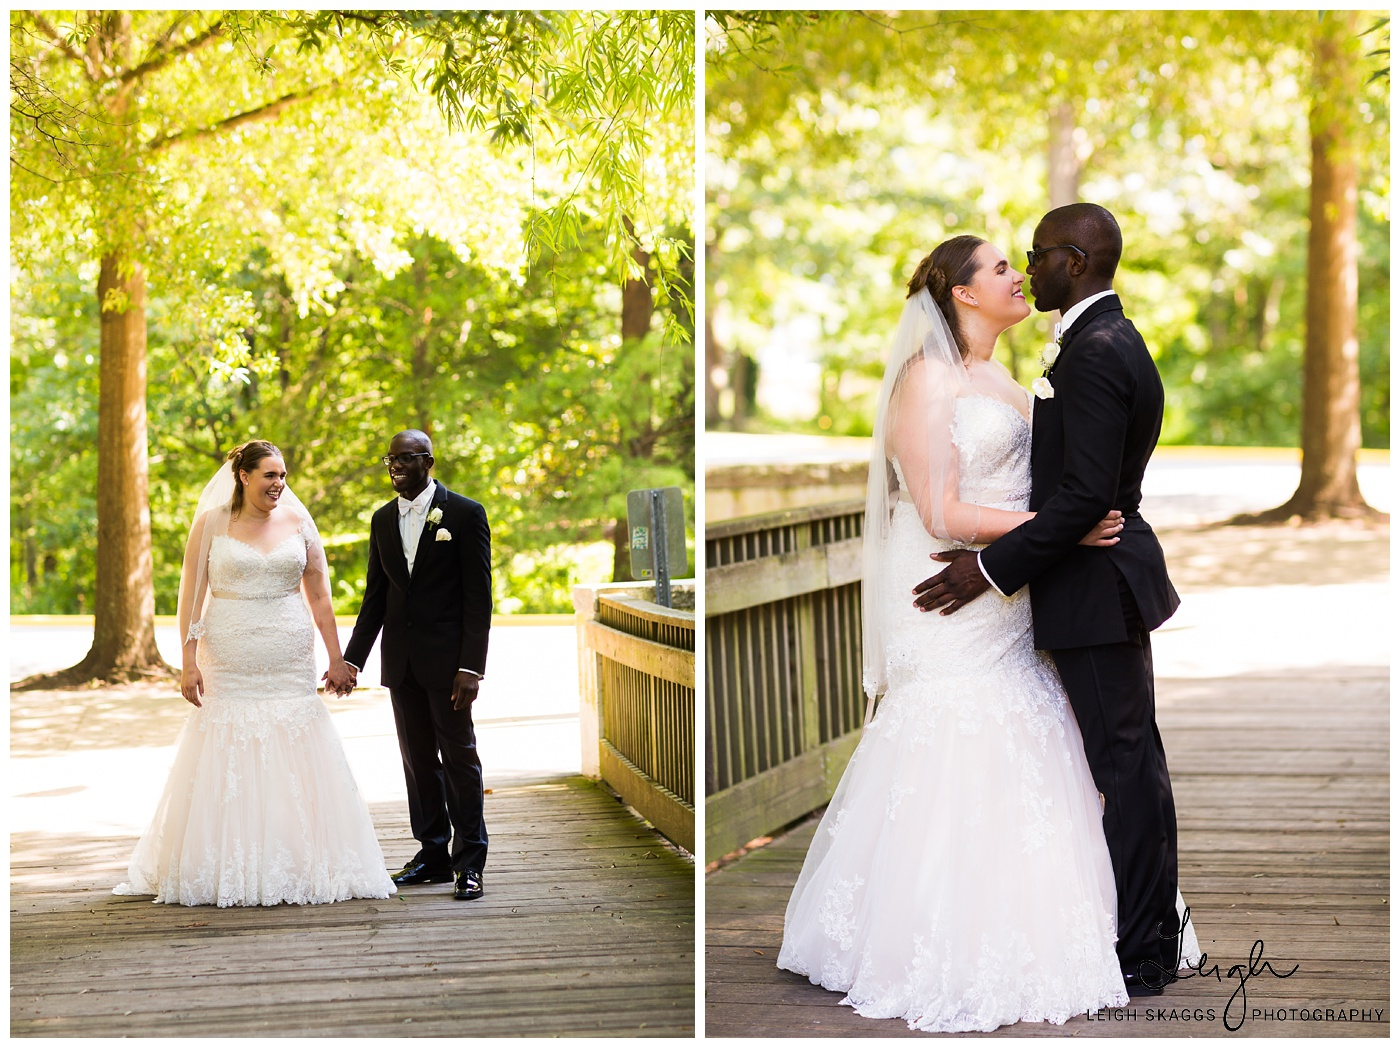 Hanna & Marlon | MOCA Wedding